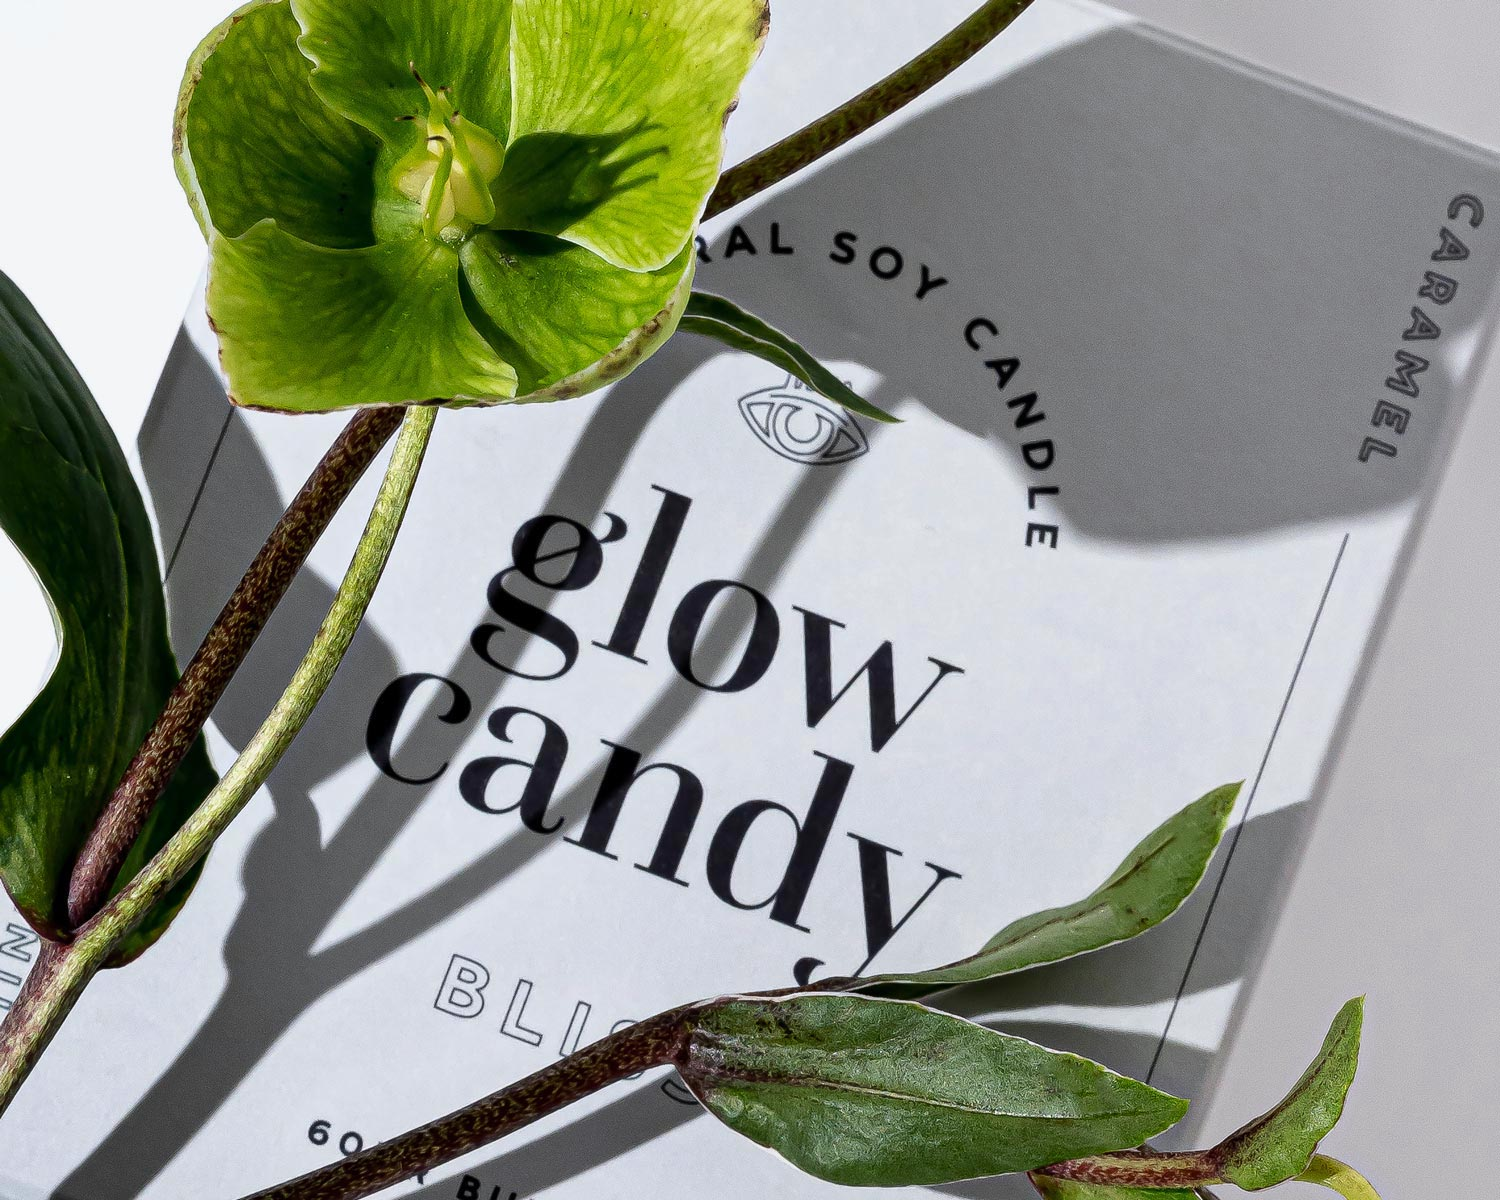 A close up of the front of the packaging for Glow Candy's 'Bliss' candle.